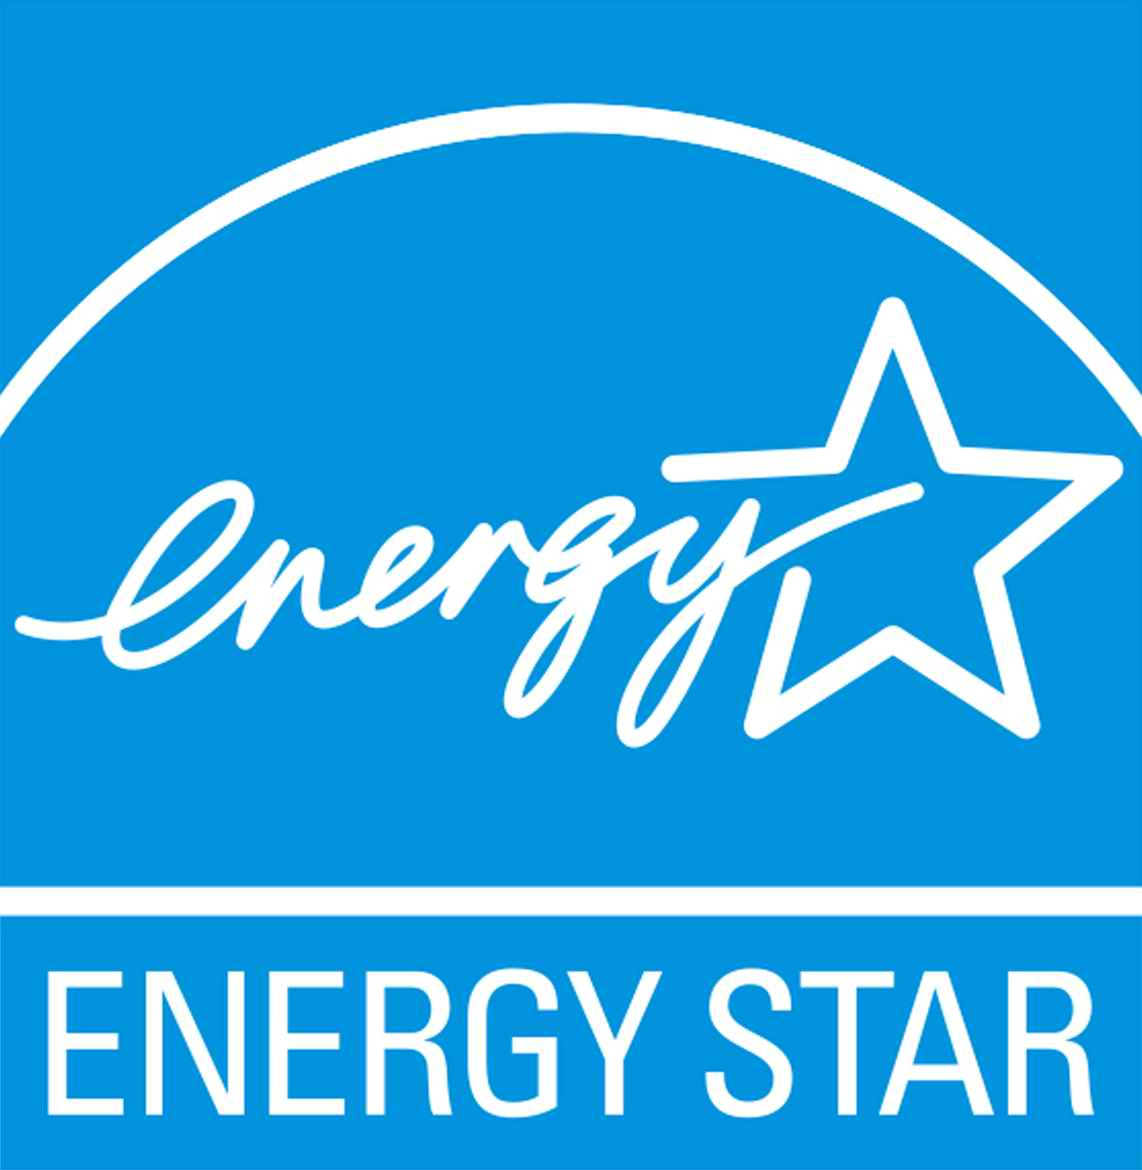 Finding A Certified Energy Star Home Builder In Michigan